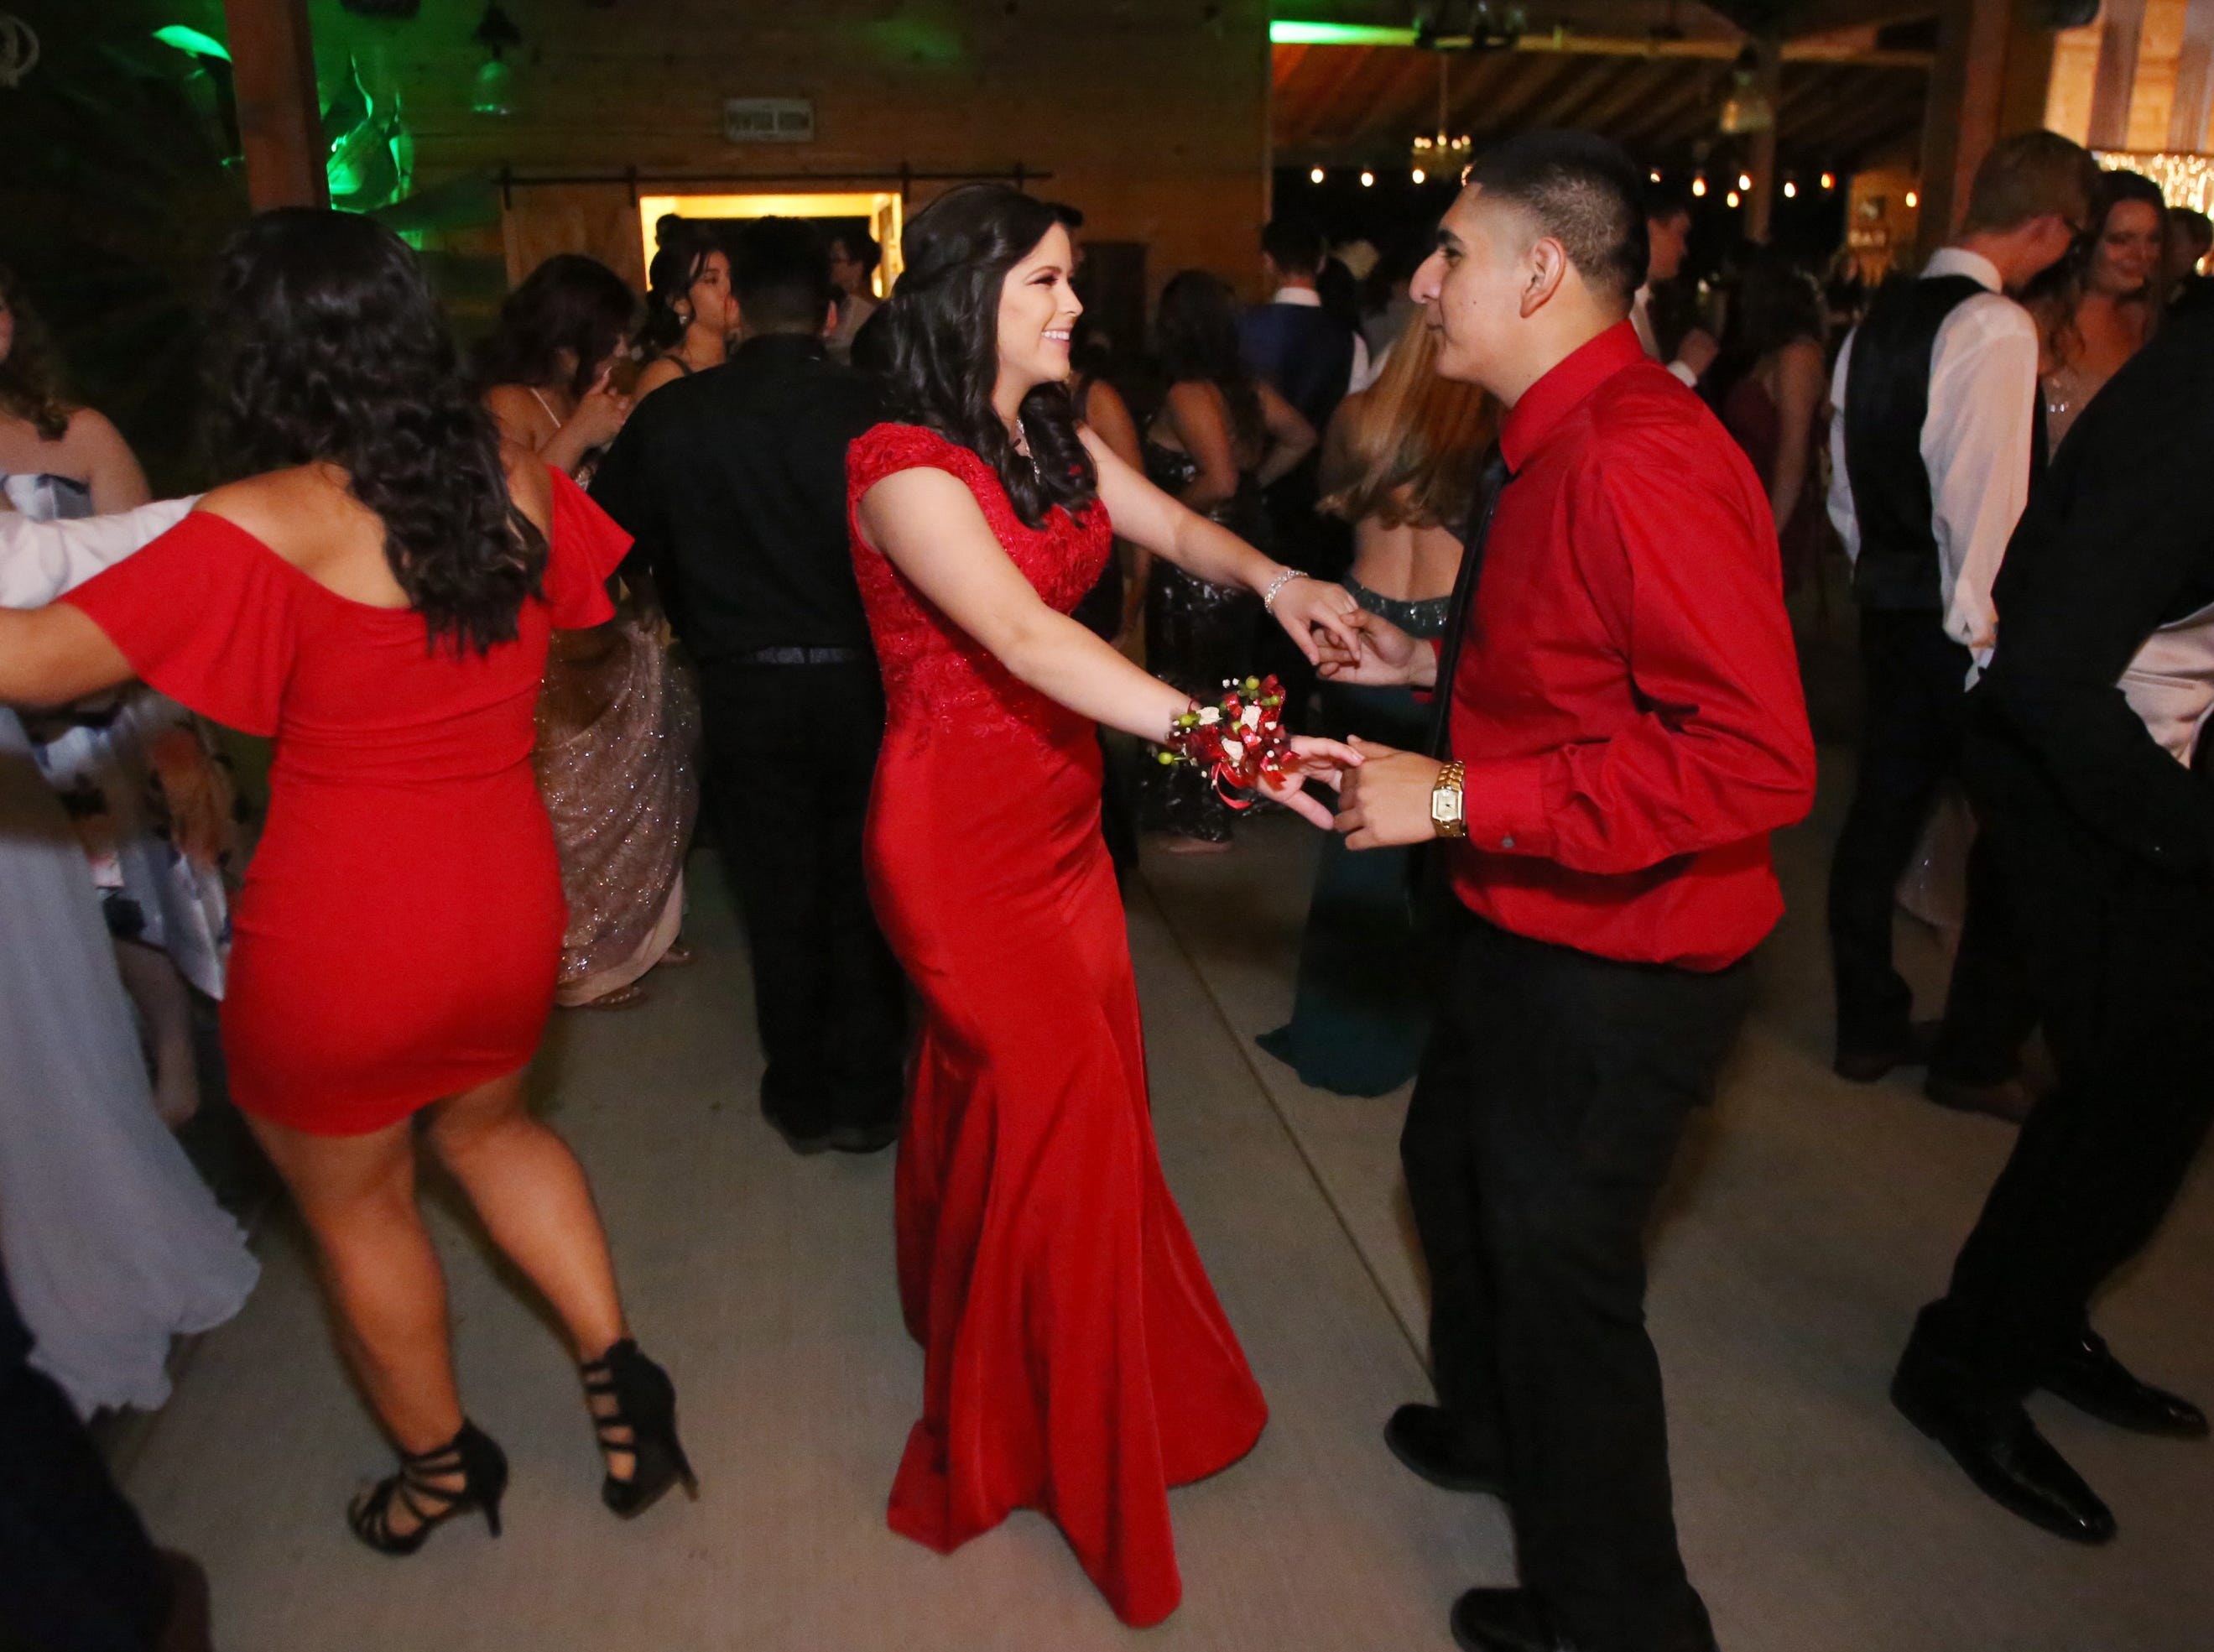 Faustino Ramos and Esmeralda Quiroz enjoy a fast dance at the Exeter Union High School prom Saturday, May 4, 2019 in Woodlake, Calif.